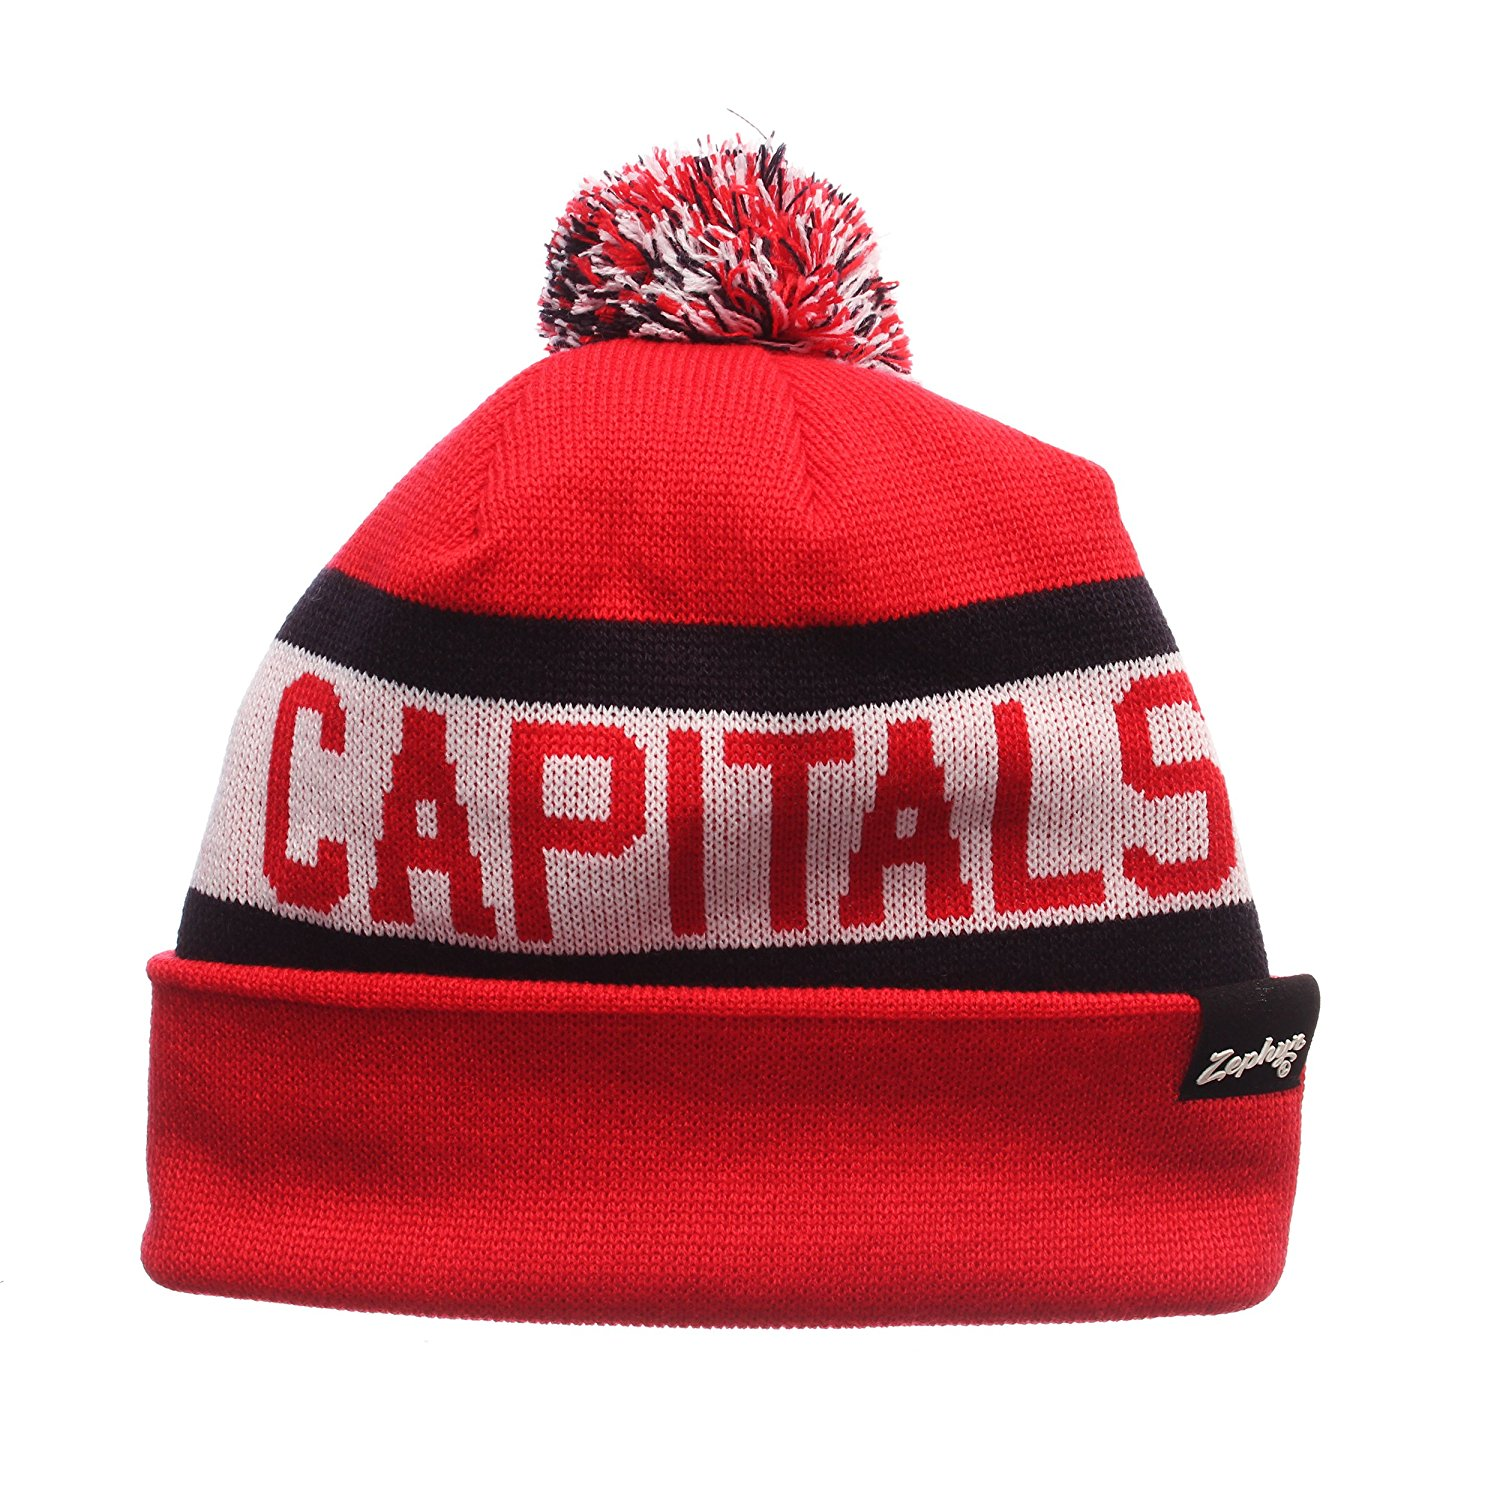 e5bcd49872f367 Get Quotations · Washington Capitals Red Cuff